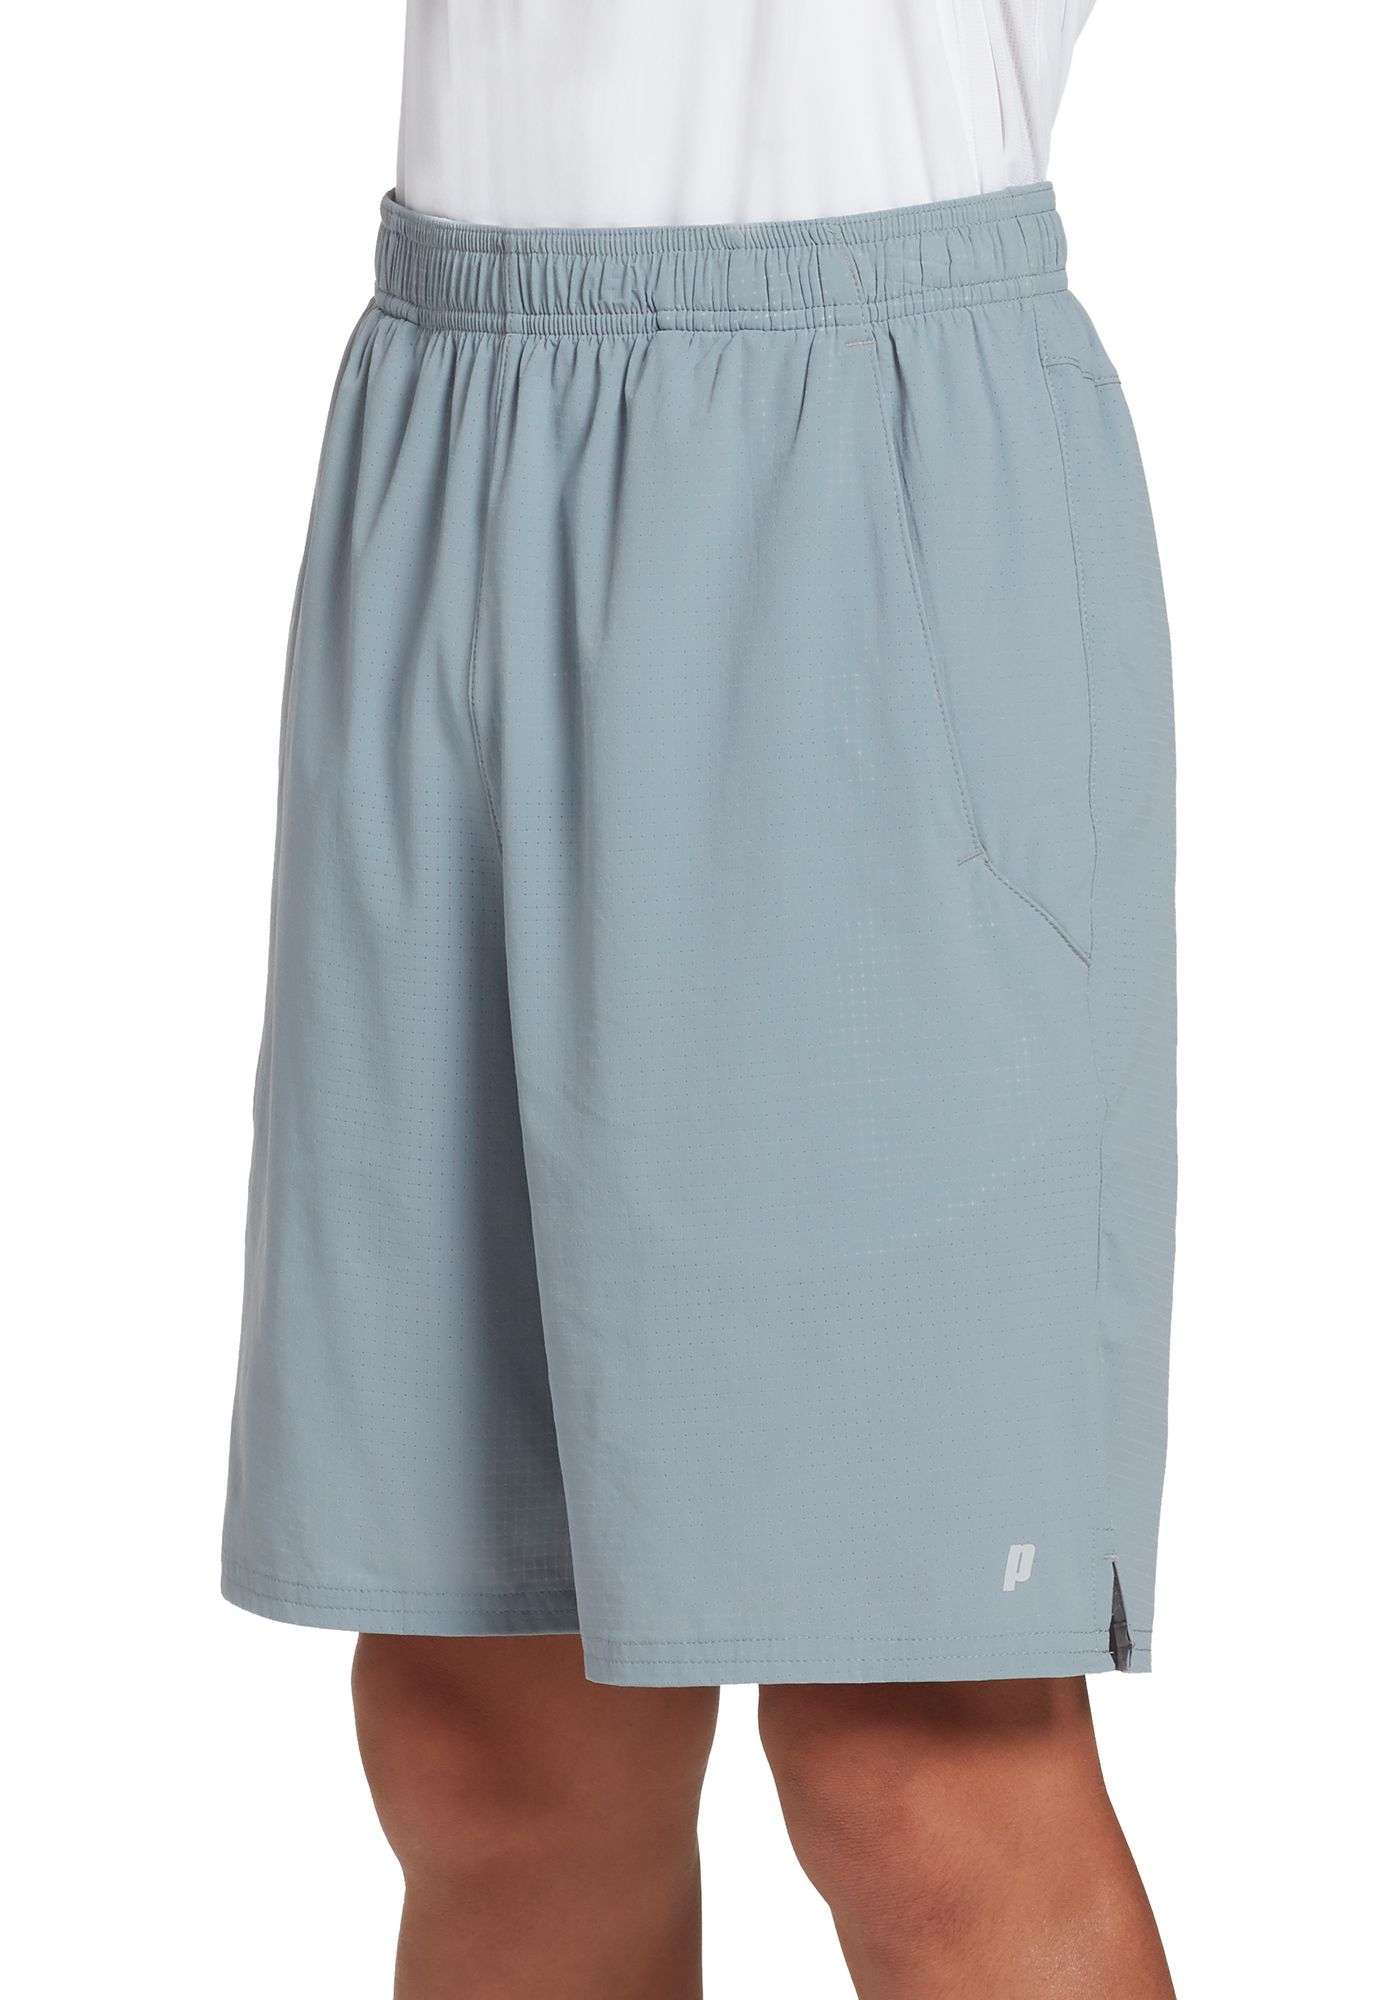 Prince Boys' Woven Perforated Match Tennis Shorts